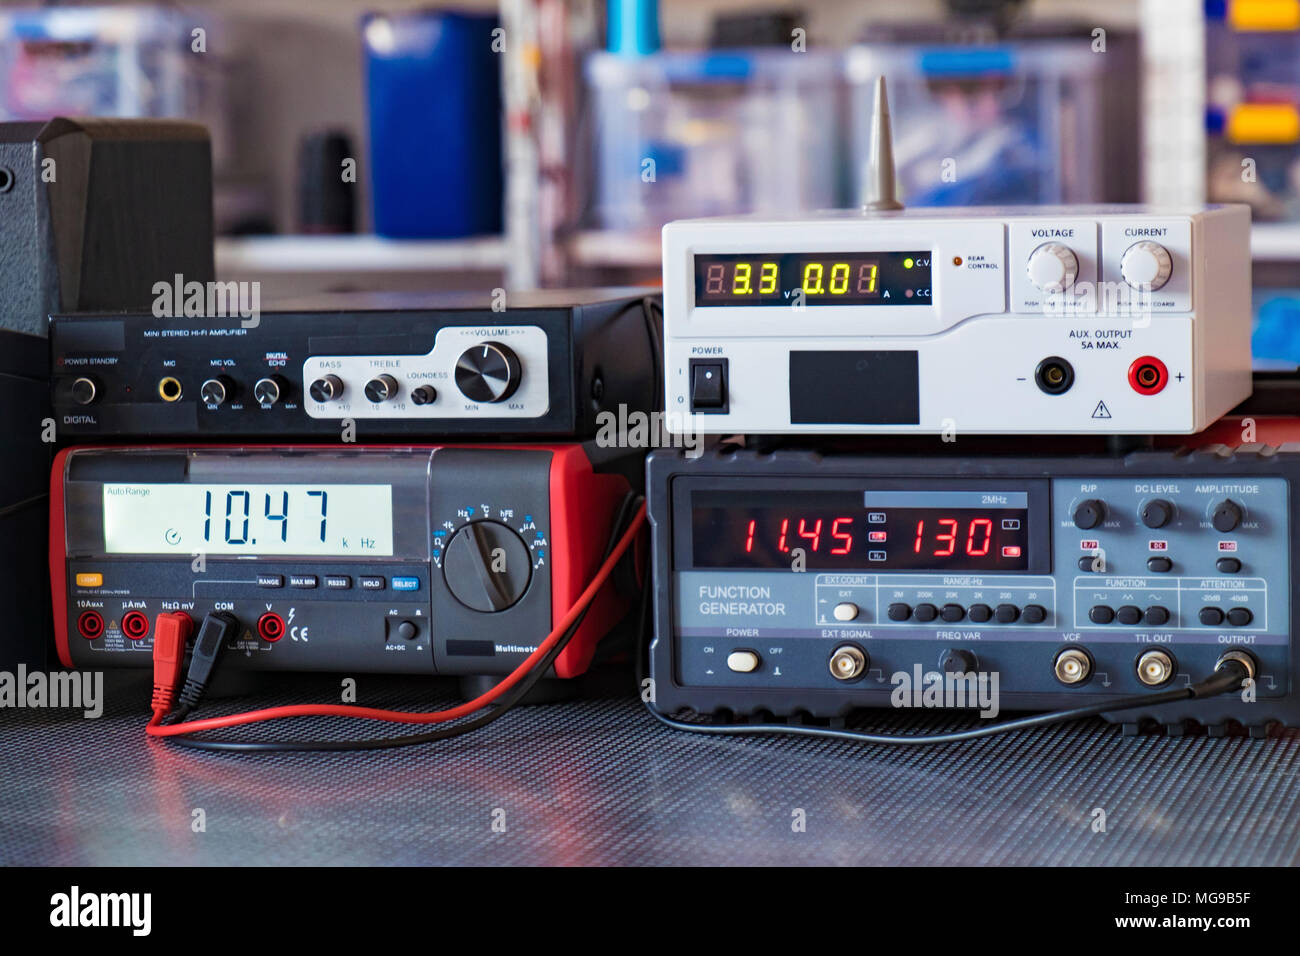 Electronics laboratory. - Stock Image